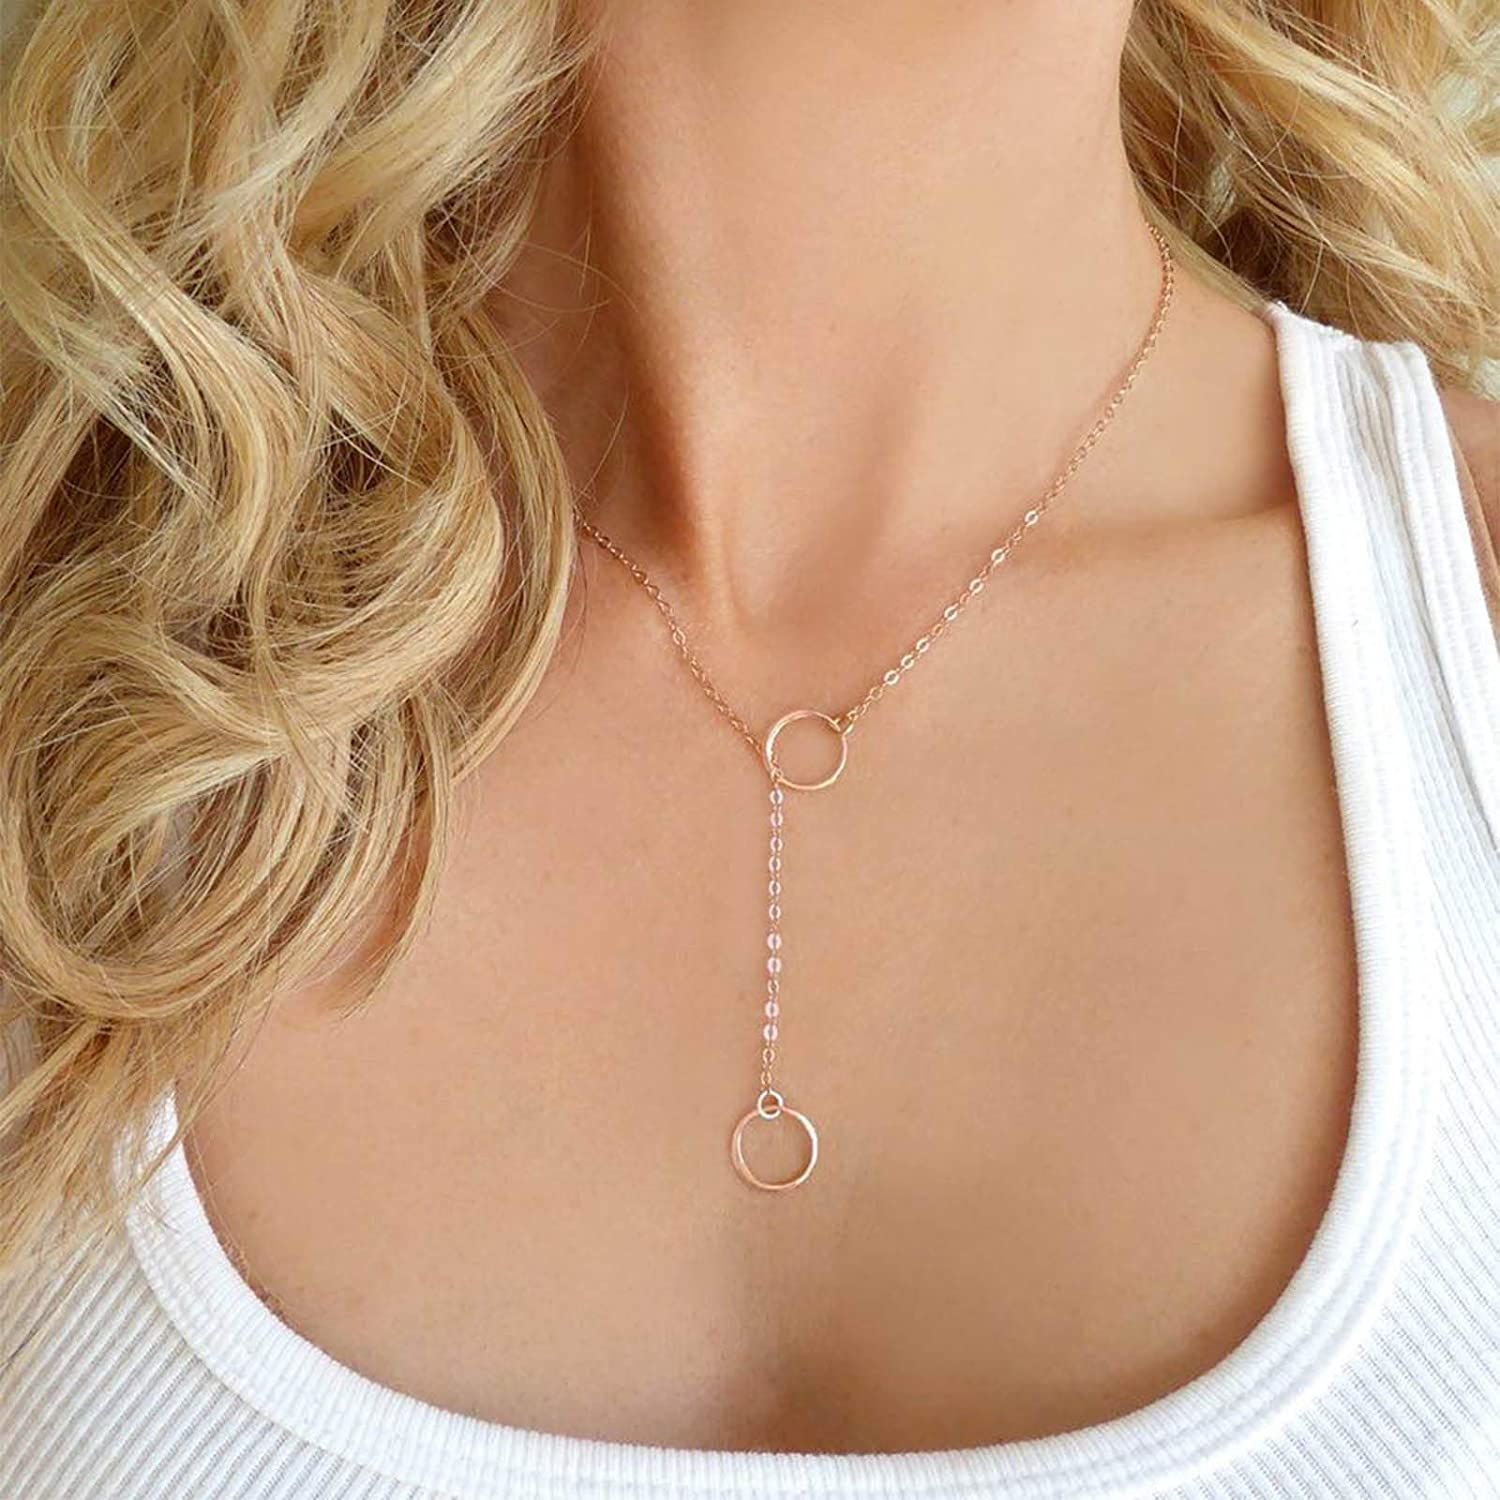 Larancie Boho Necklace Hollow Circle Pendant Necklace Gold Fashion Y Necklace Chain Vintage Necklace Jewelry for Women and Girls